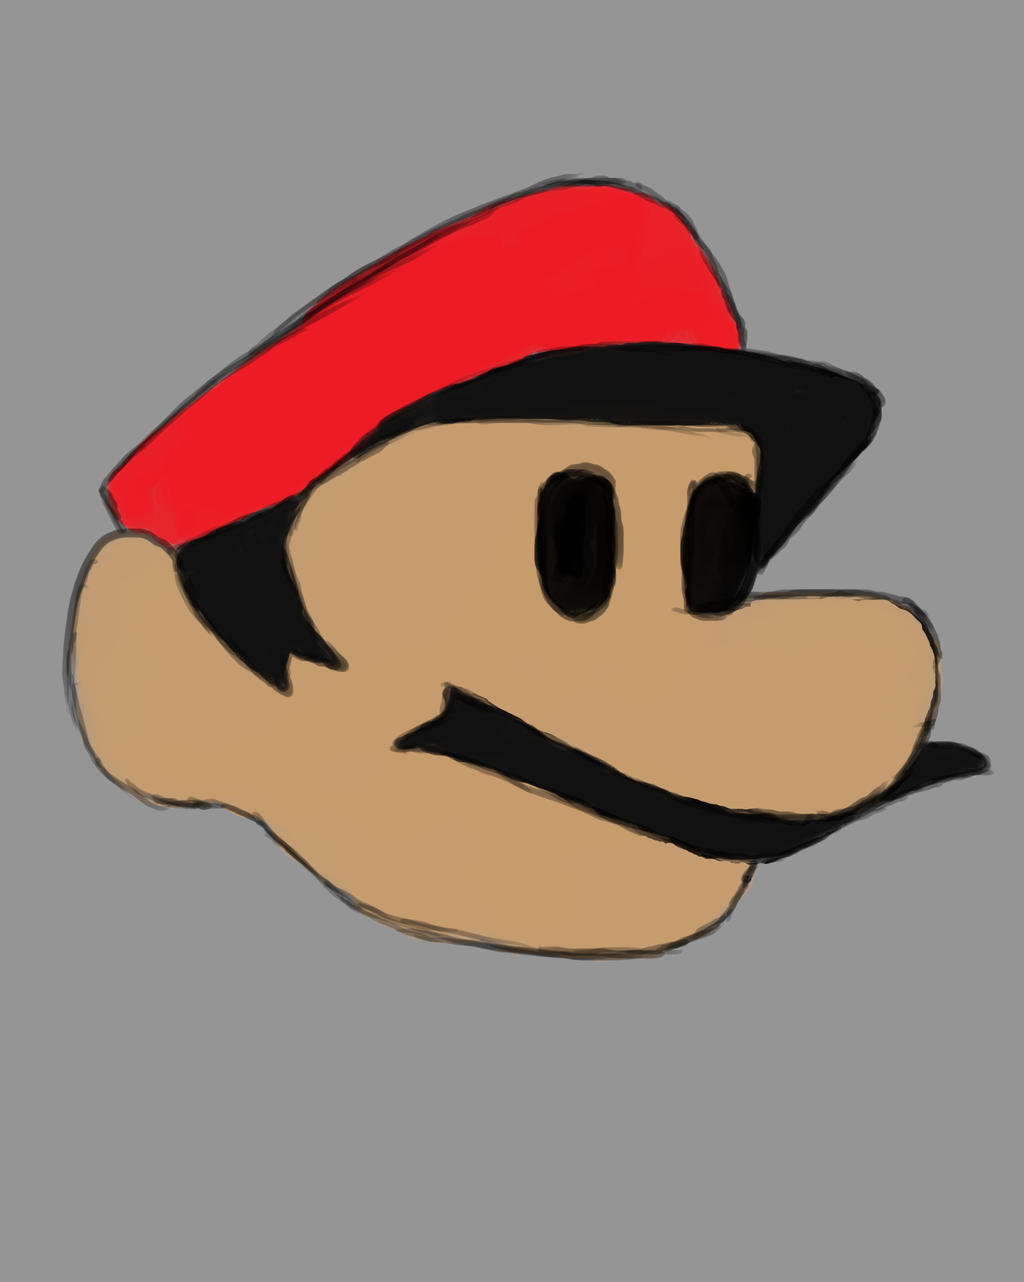 Mario Head Daily sketch #730 by GothicVampireFreak